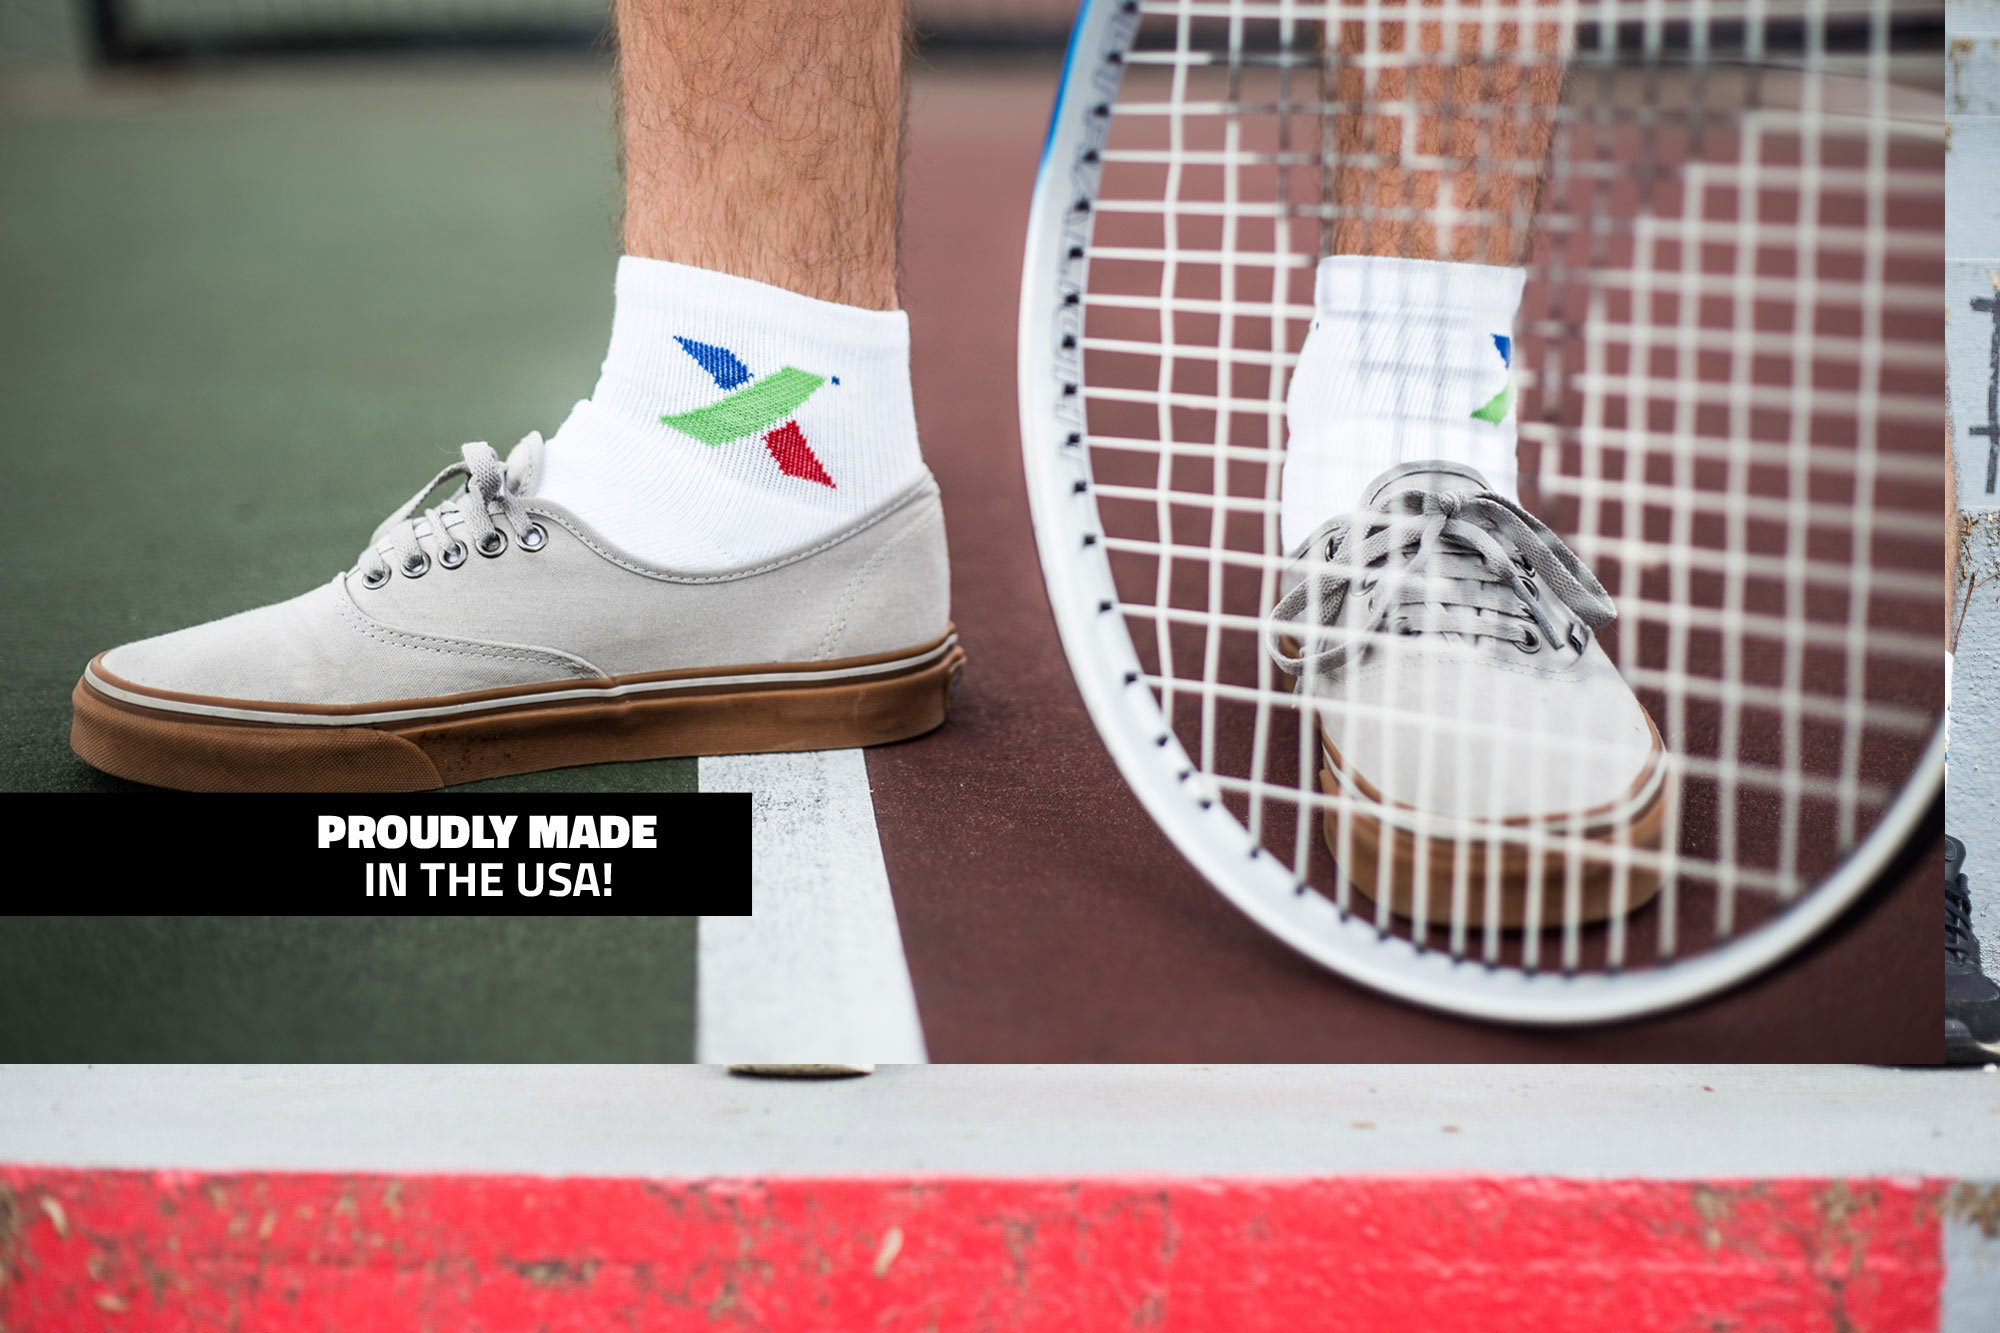 Promotional Products Proudly Made in the USA